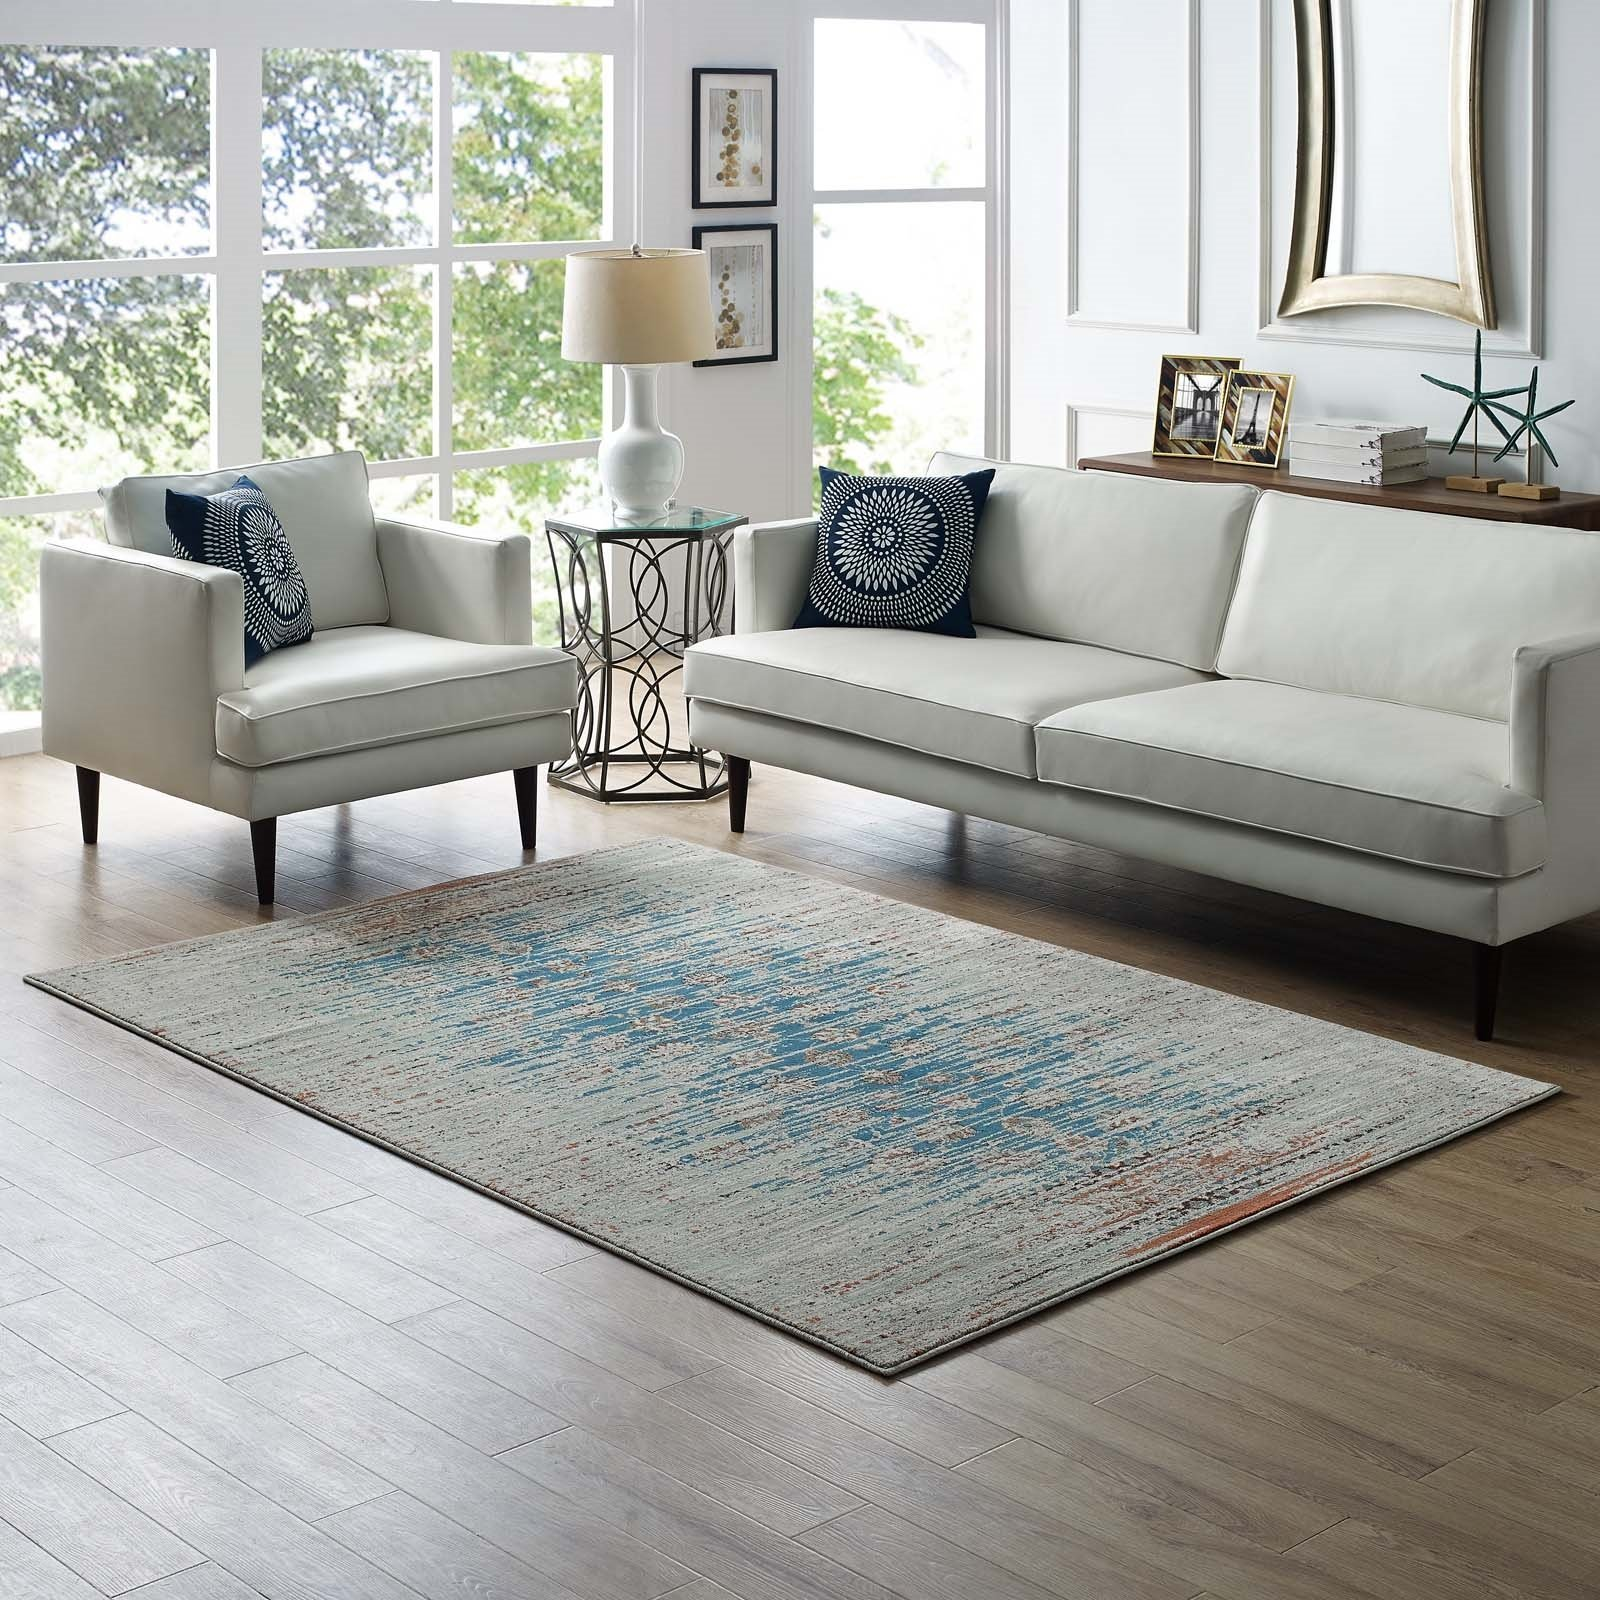 Hesper  Distressed Contemporary Floral Lattice 5x8 Area Rug in Teal, Beige and Brown Product Image